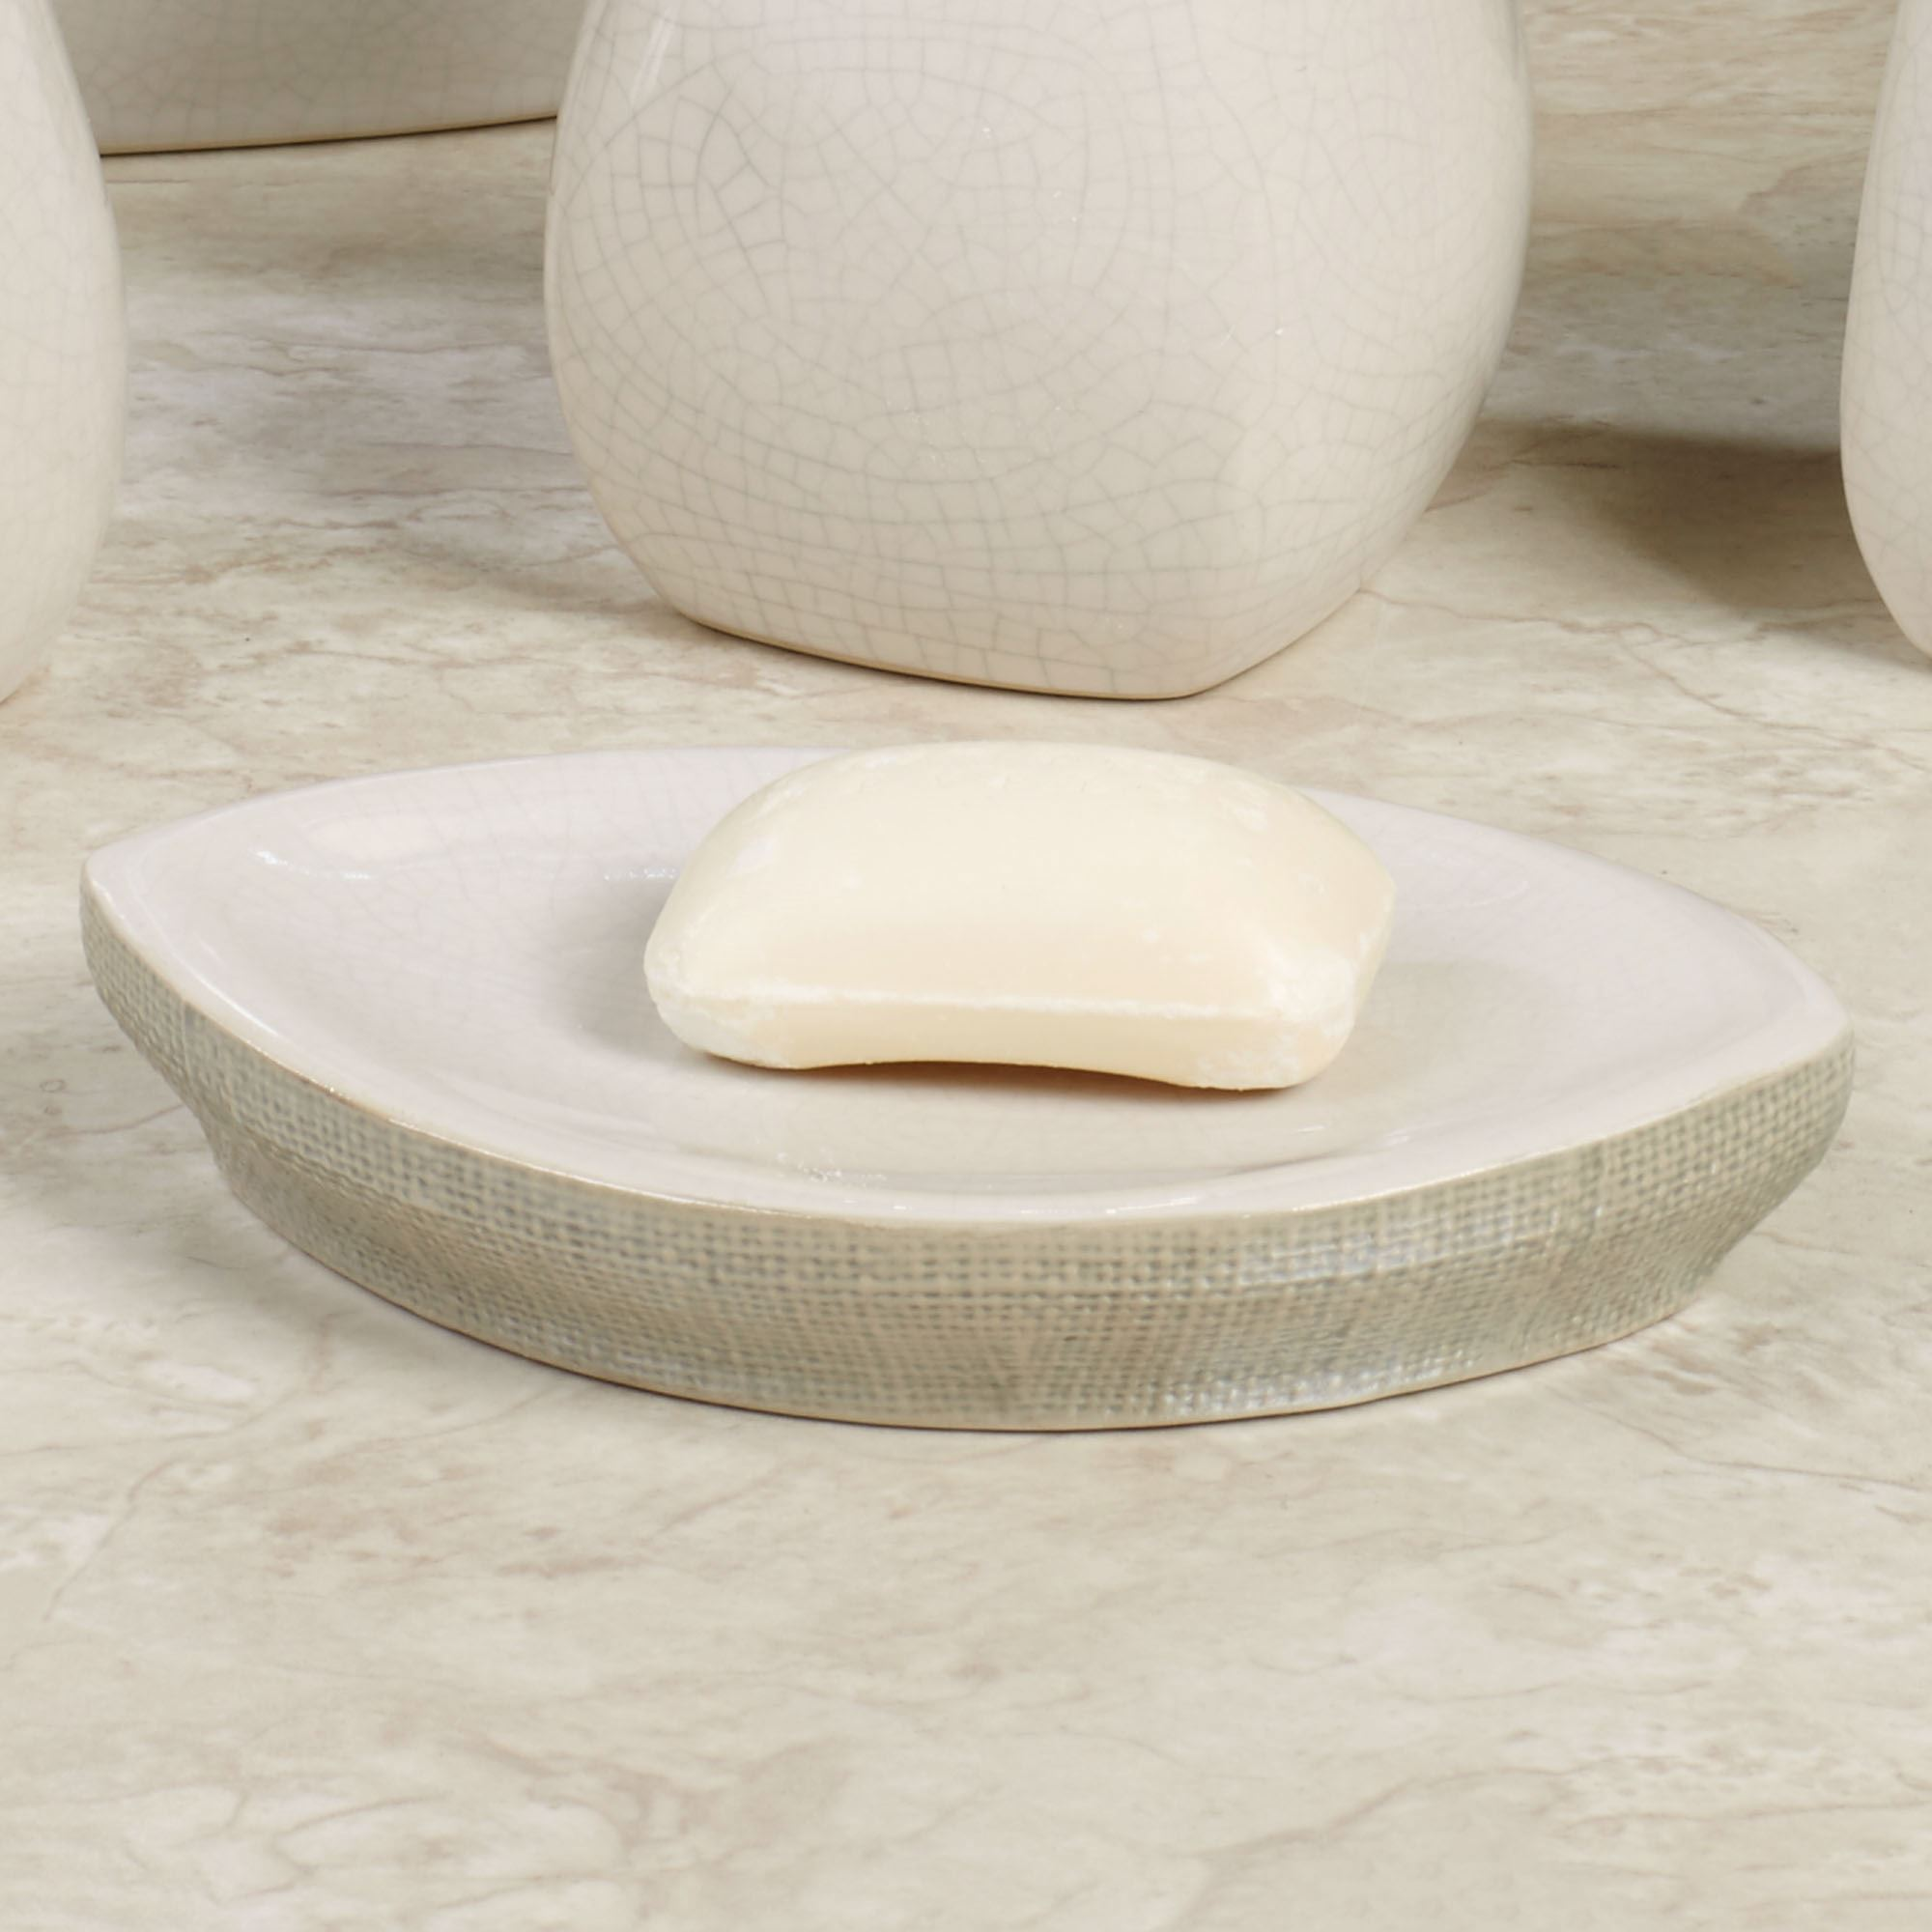 South Hampton Soap Dish Pearl